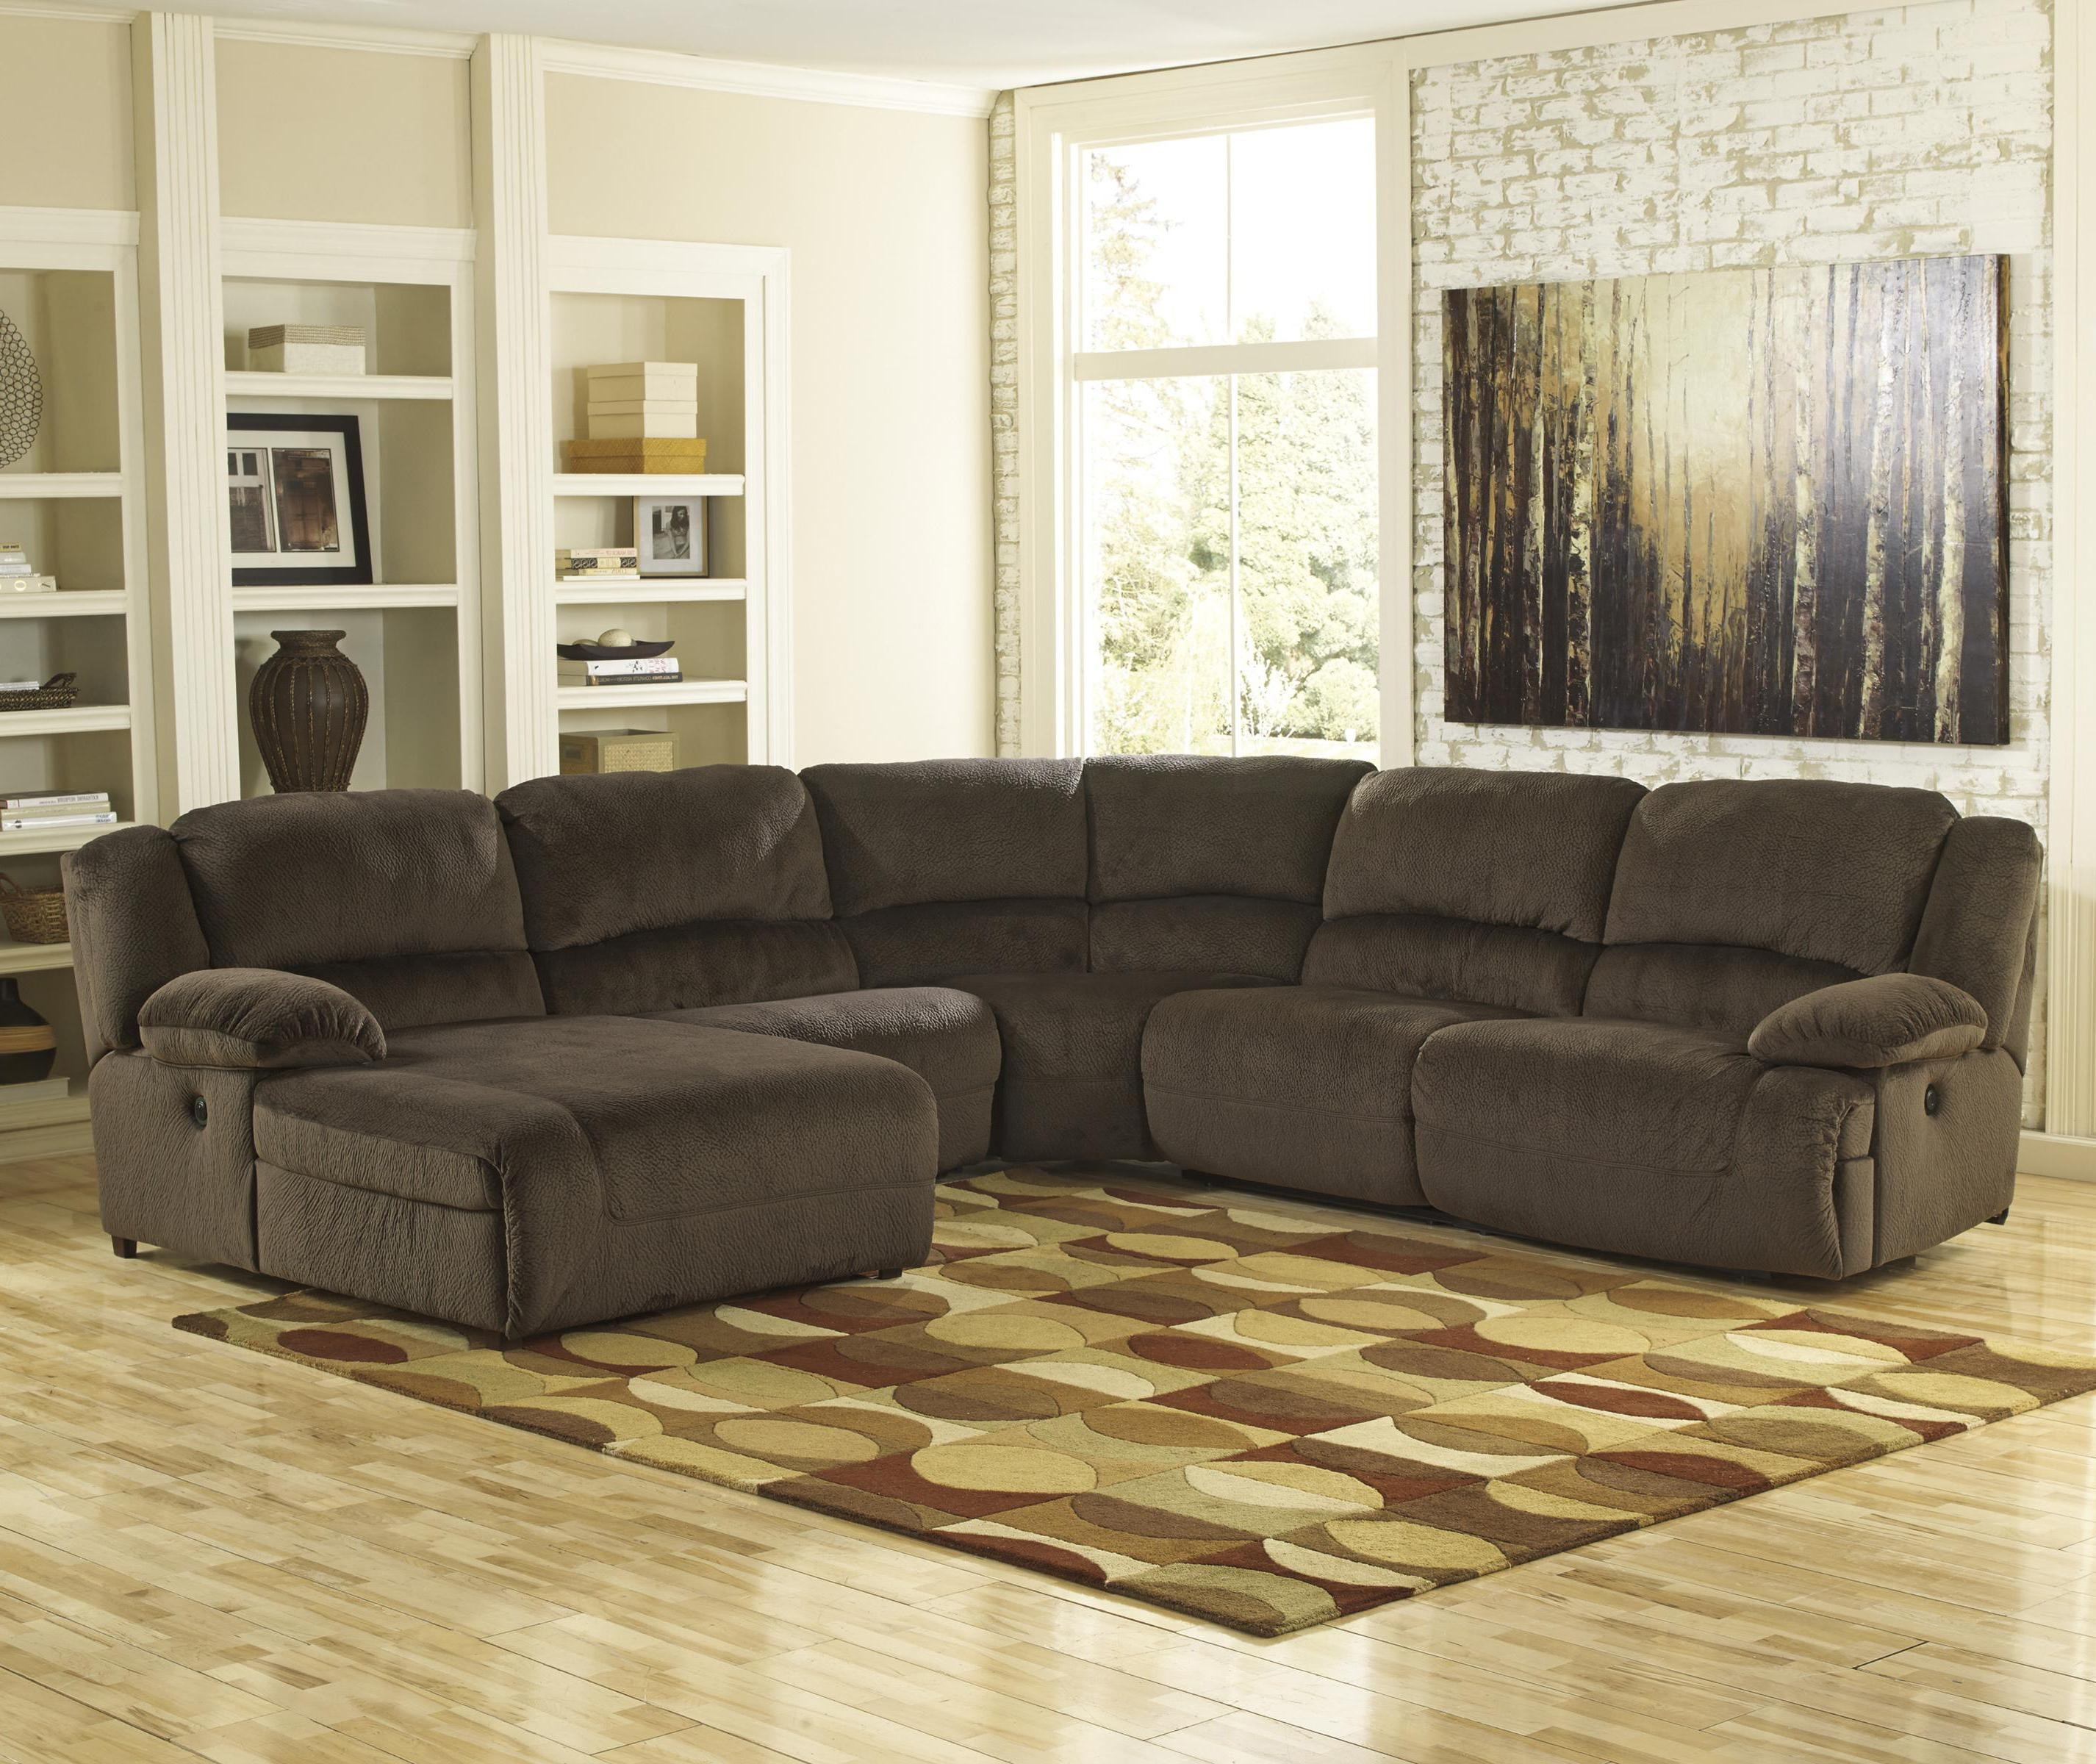 Signature Design By Ashley Toletta   Chocolate Power Reclining Sectional  With Left Press Back Chaise